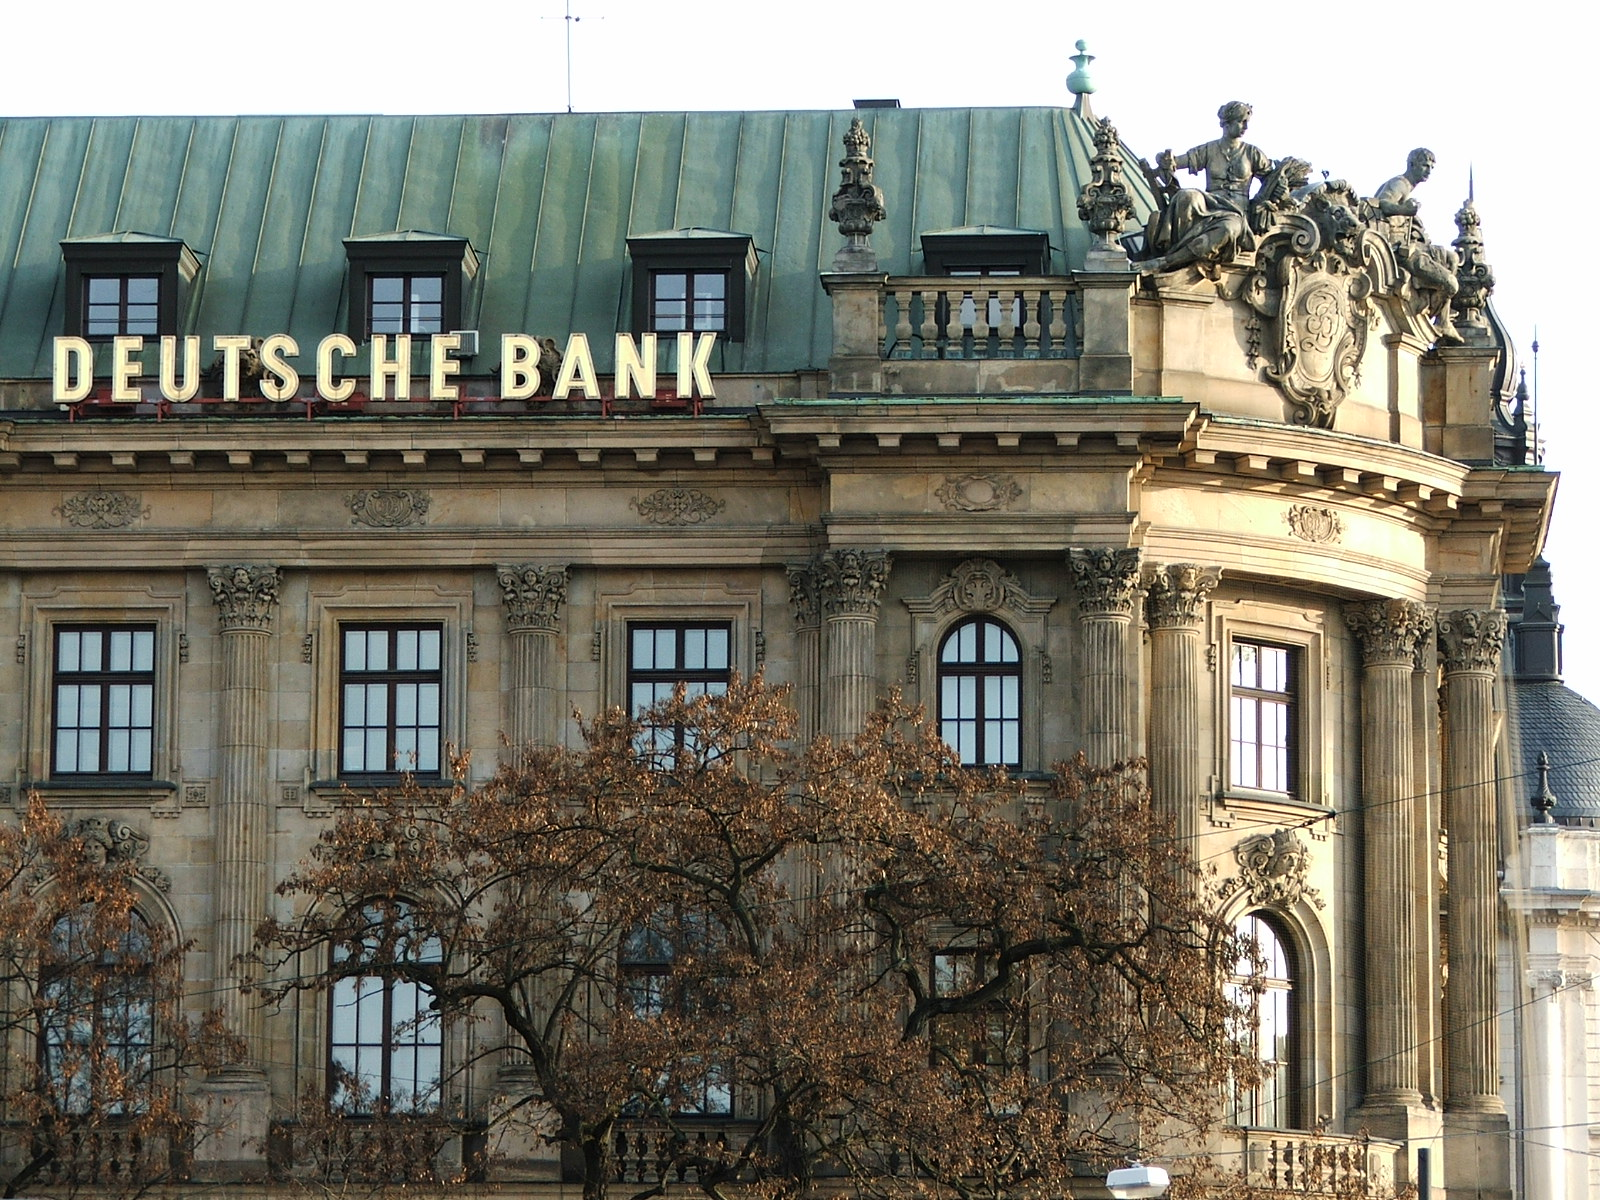 deutsche bank to pay 2 5b in libor rigging case. Black Bedroom Furniture Sets. Home Design Ideas